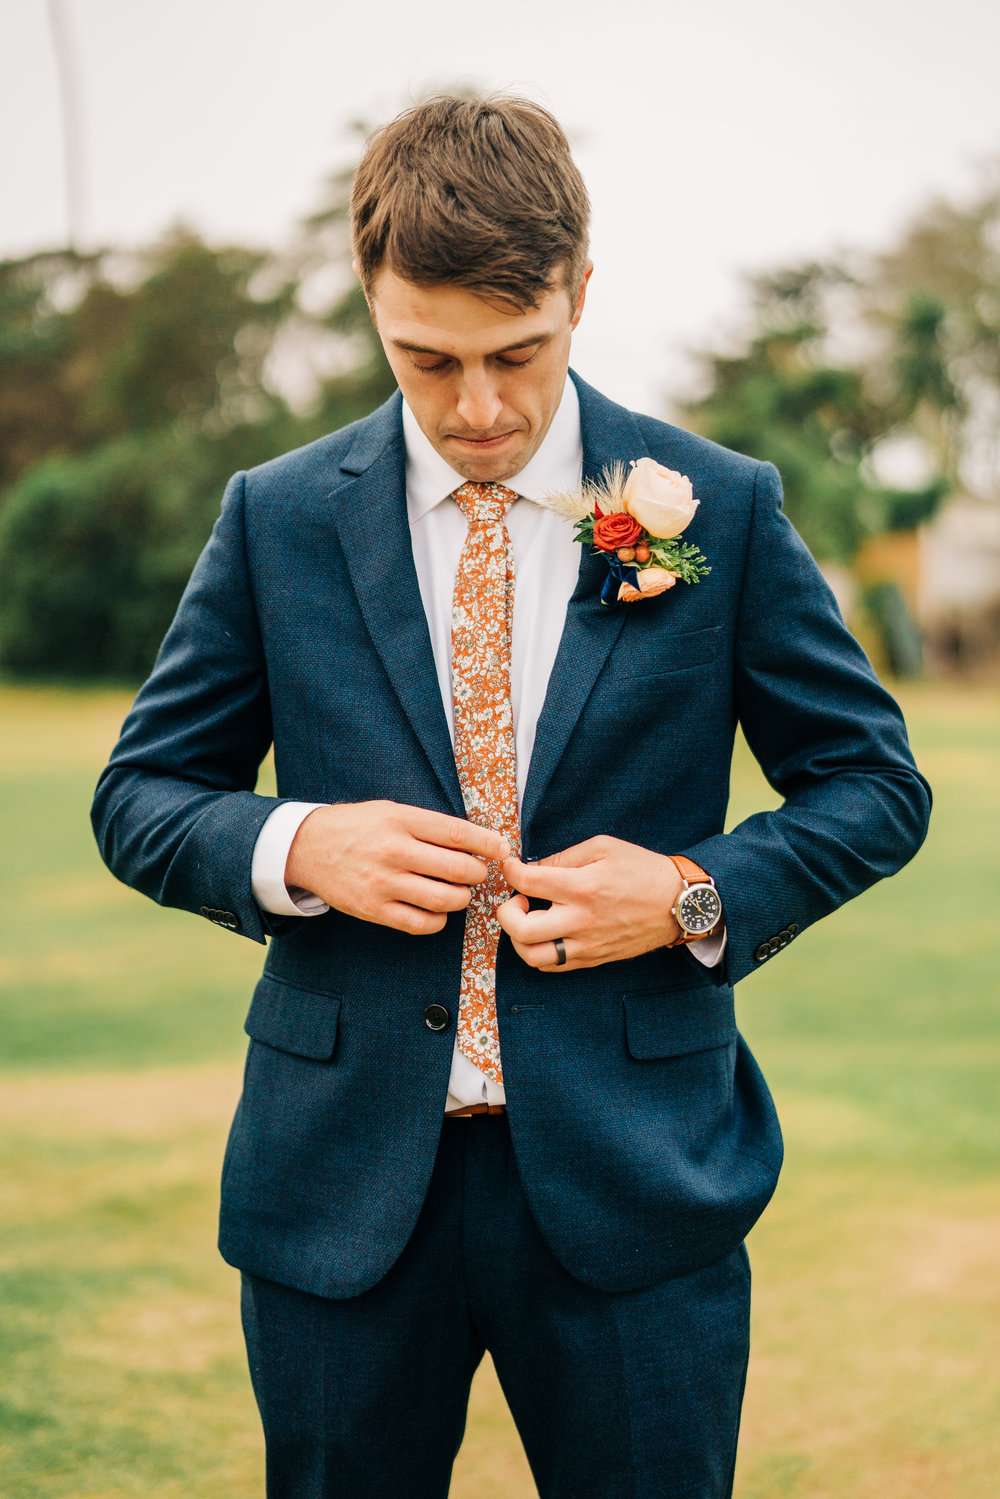 www.santabarbarawedding.com | Brandon Bibbins Photography | The Cottages at Polo Run | Christina Welch Floral | Groom Buttons Up